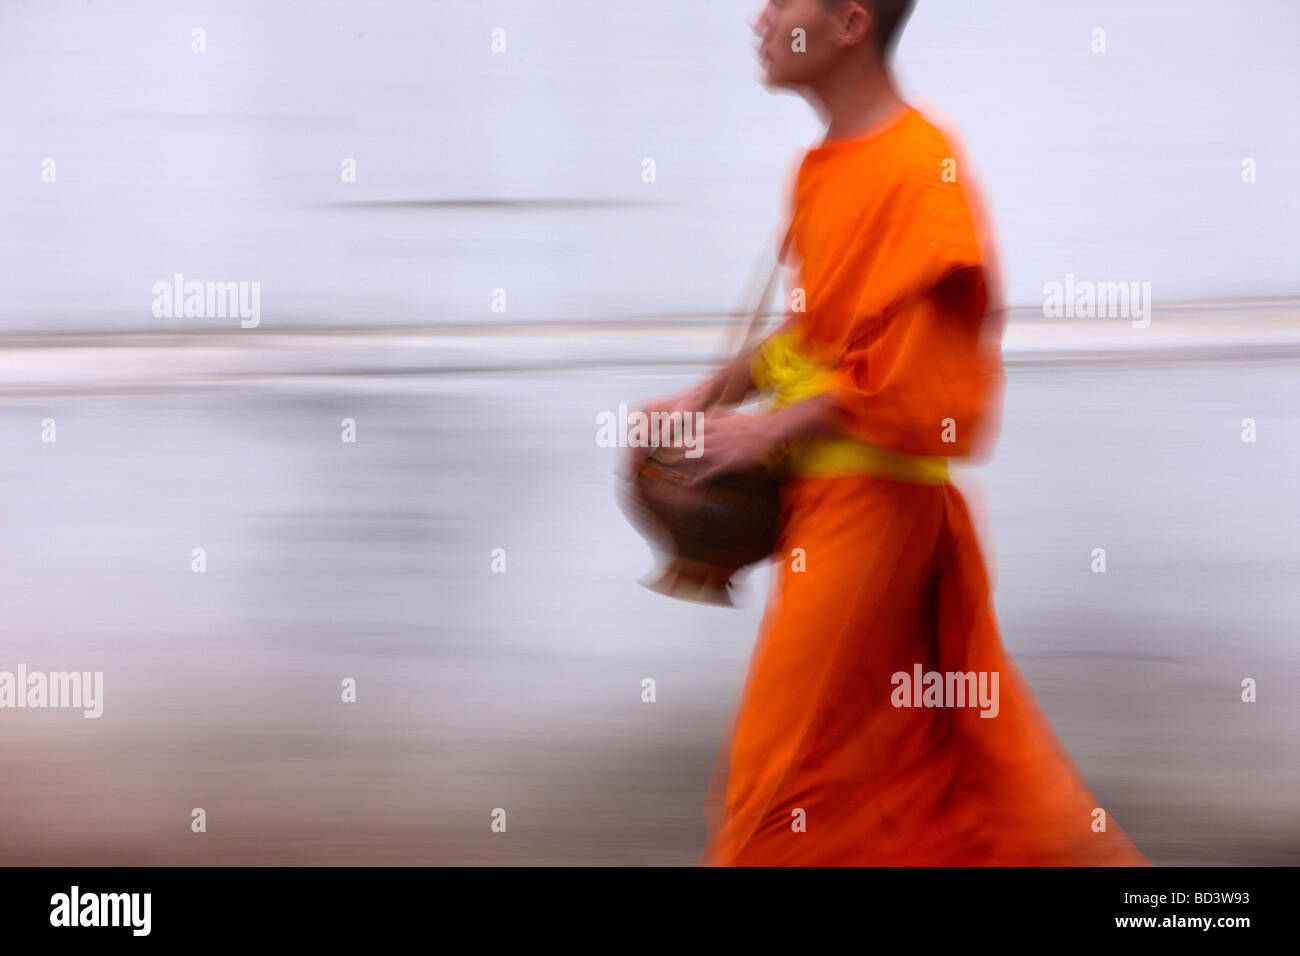 monks walking through the streets at dawn to collect gifts of food, Luang Prabang, Laos - Stock Image